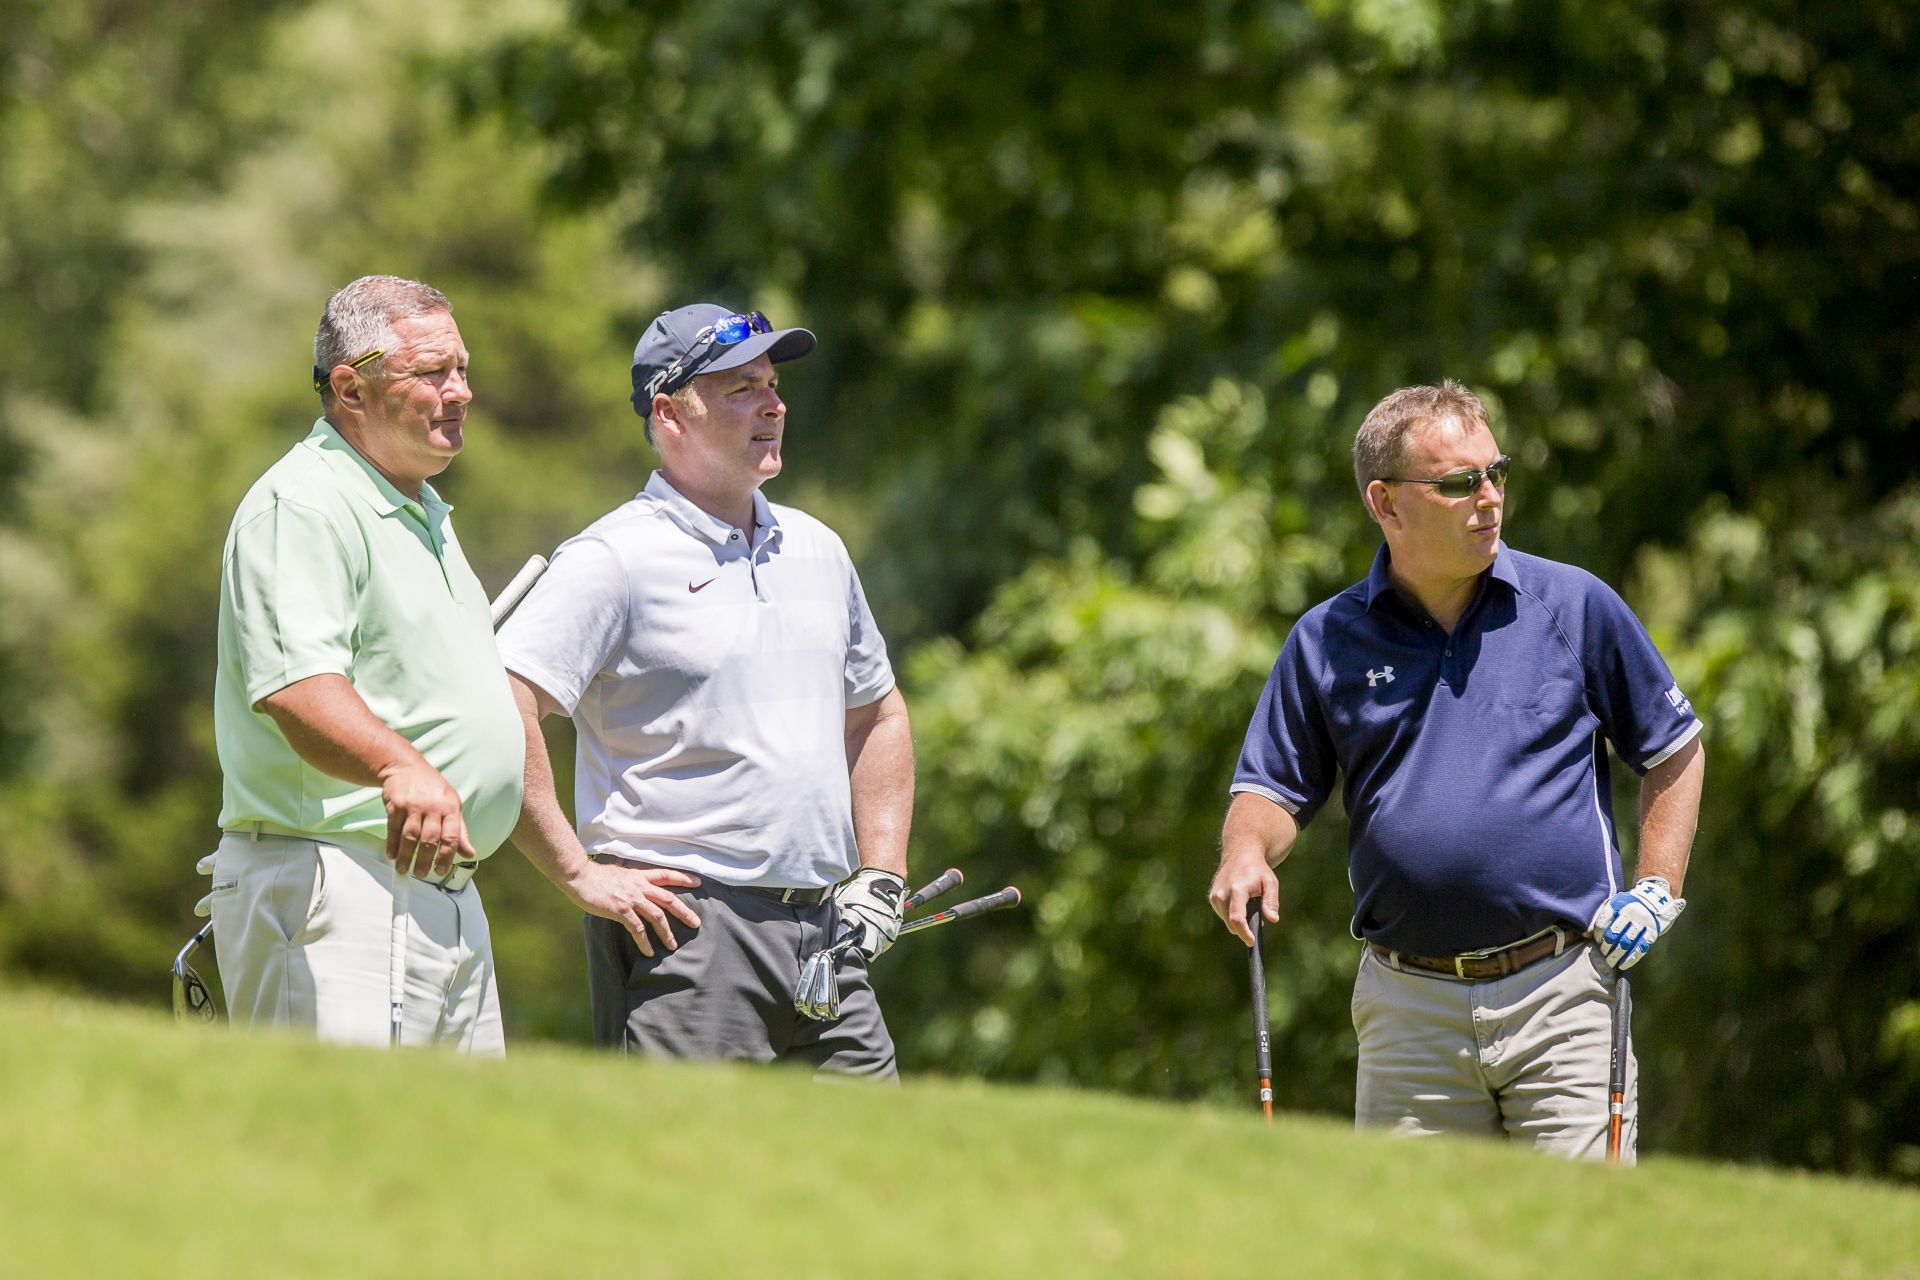 Langley for Families Charity Golf Classic gallery image #10